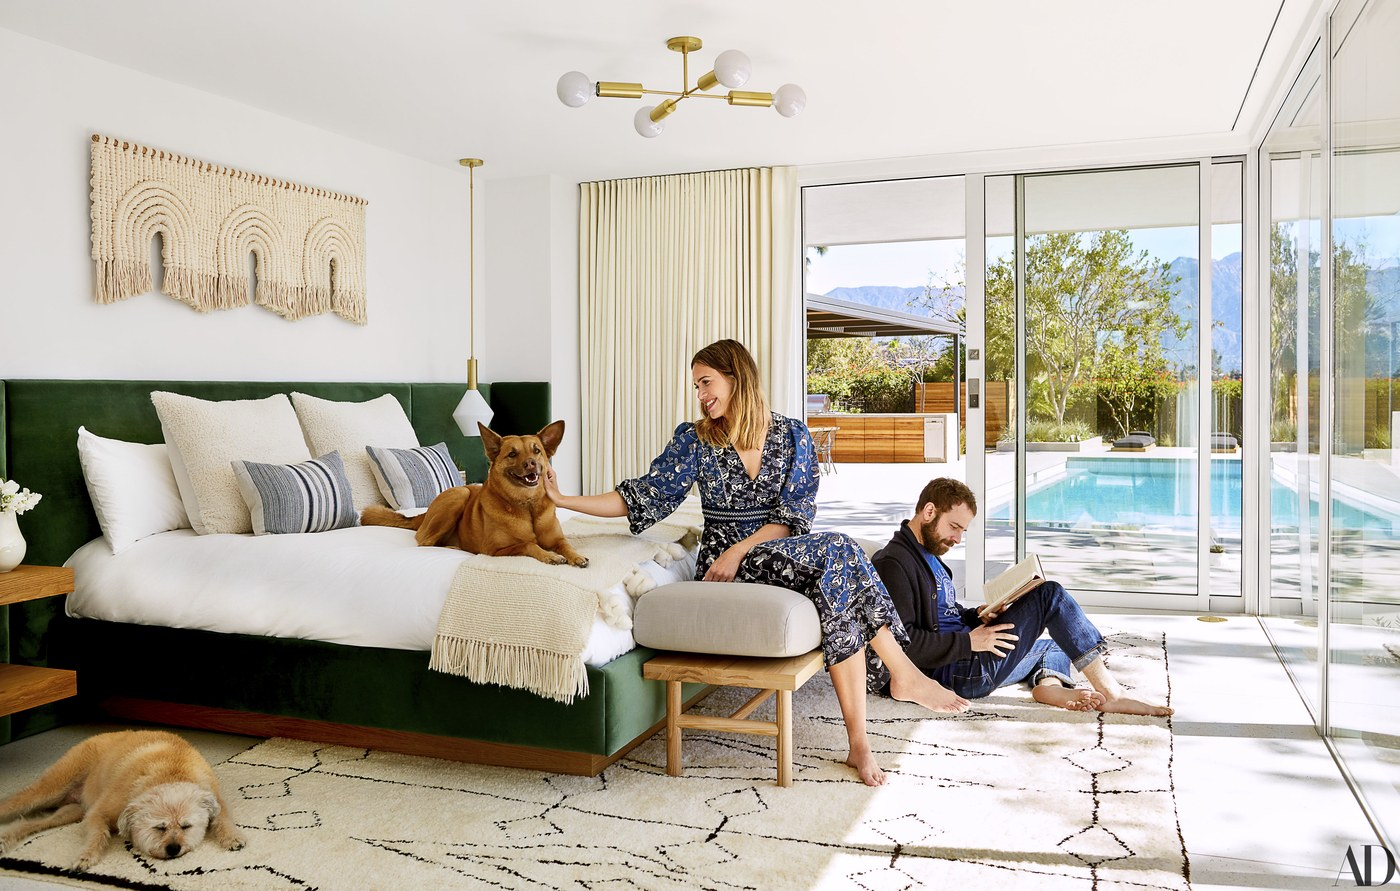 Mandy Moore & her now husband Taylor Goldsmith's master bedroom is a dream! We love her custom-built bed by  Sarah Sherman Samuel  in a  Fabricut  velvet with macramé artwork by  Sally England  above. The cozy bench by  Katy Skelton  &  Cedar & Moss  lighting just add to the beauty of the sanctuary.